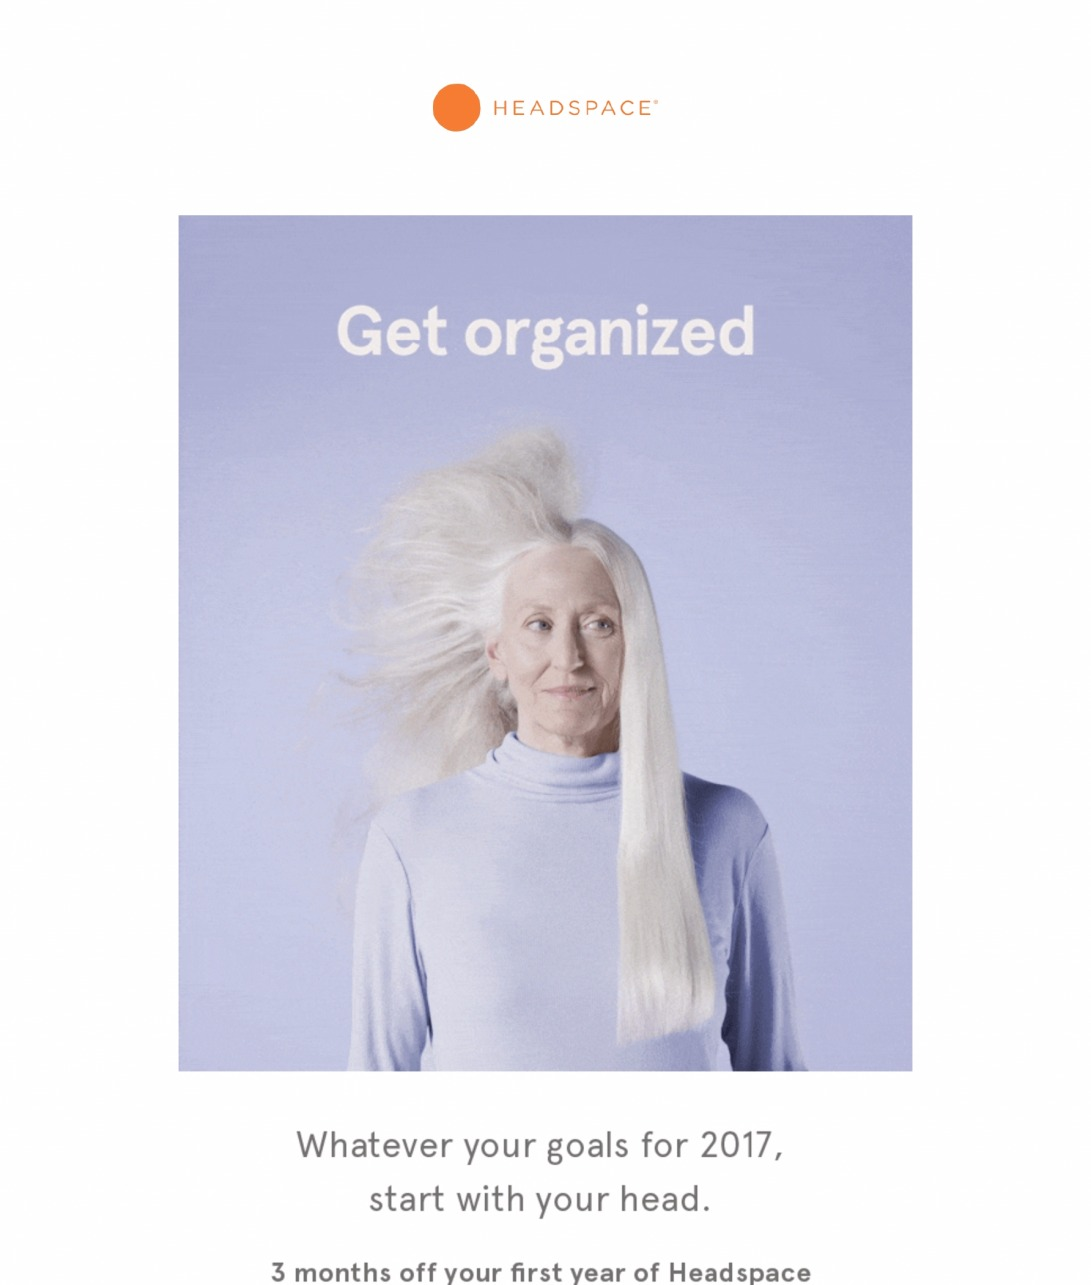 Get your head straight with 3 months off Headspace